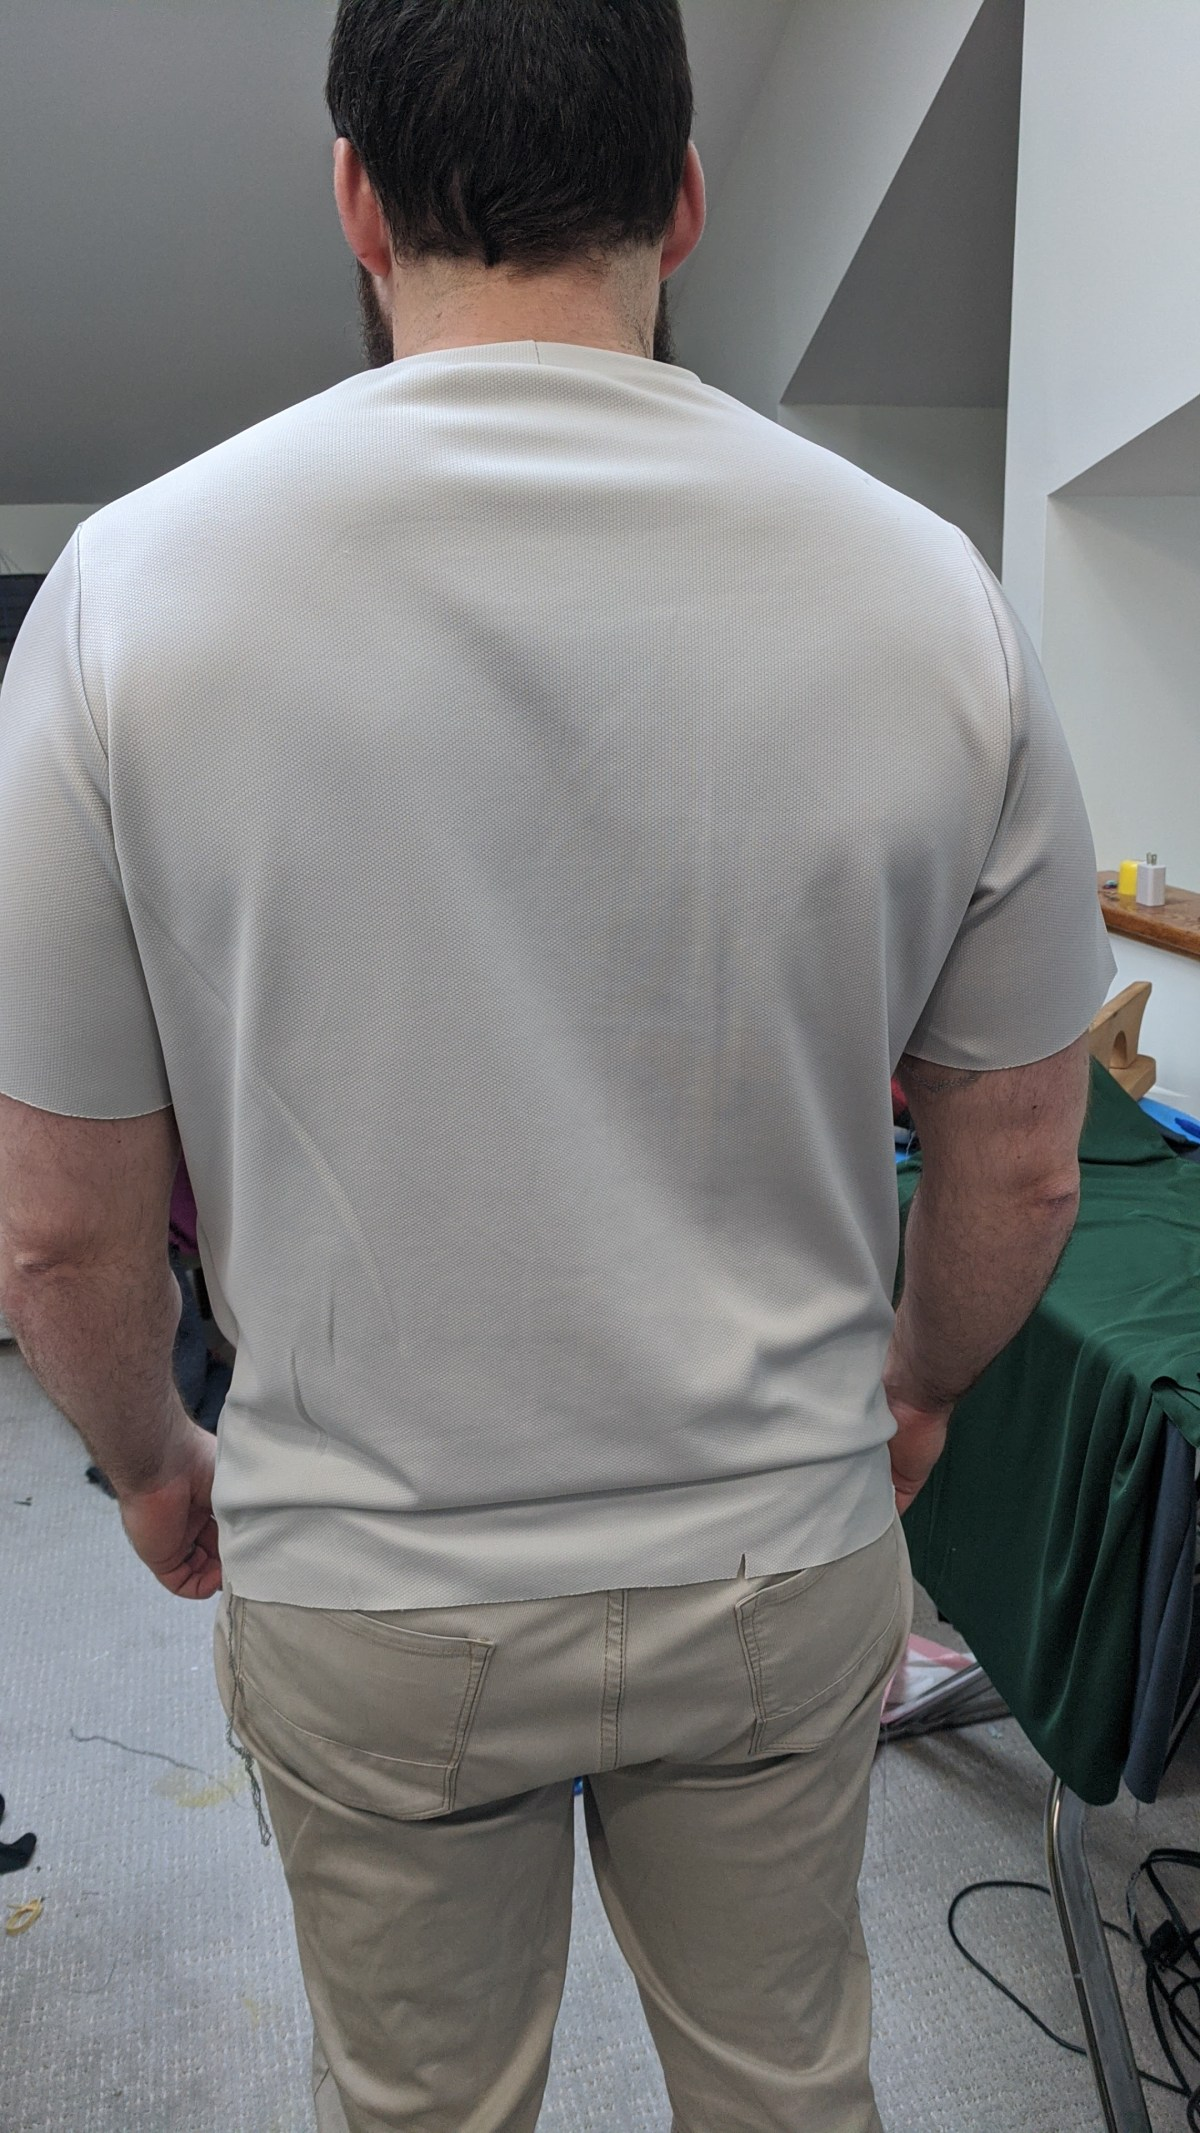 A photo of the author's husband wearing the third muslin, a light grey tee shirt, from the back.